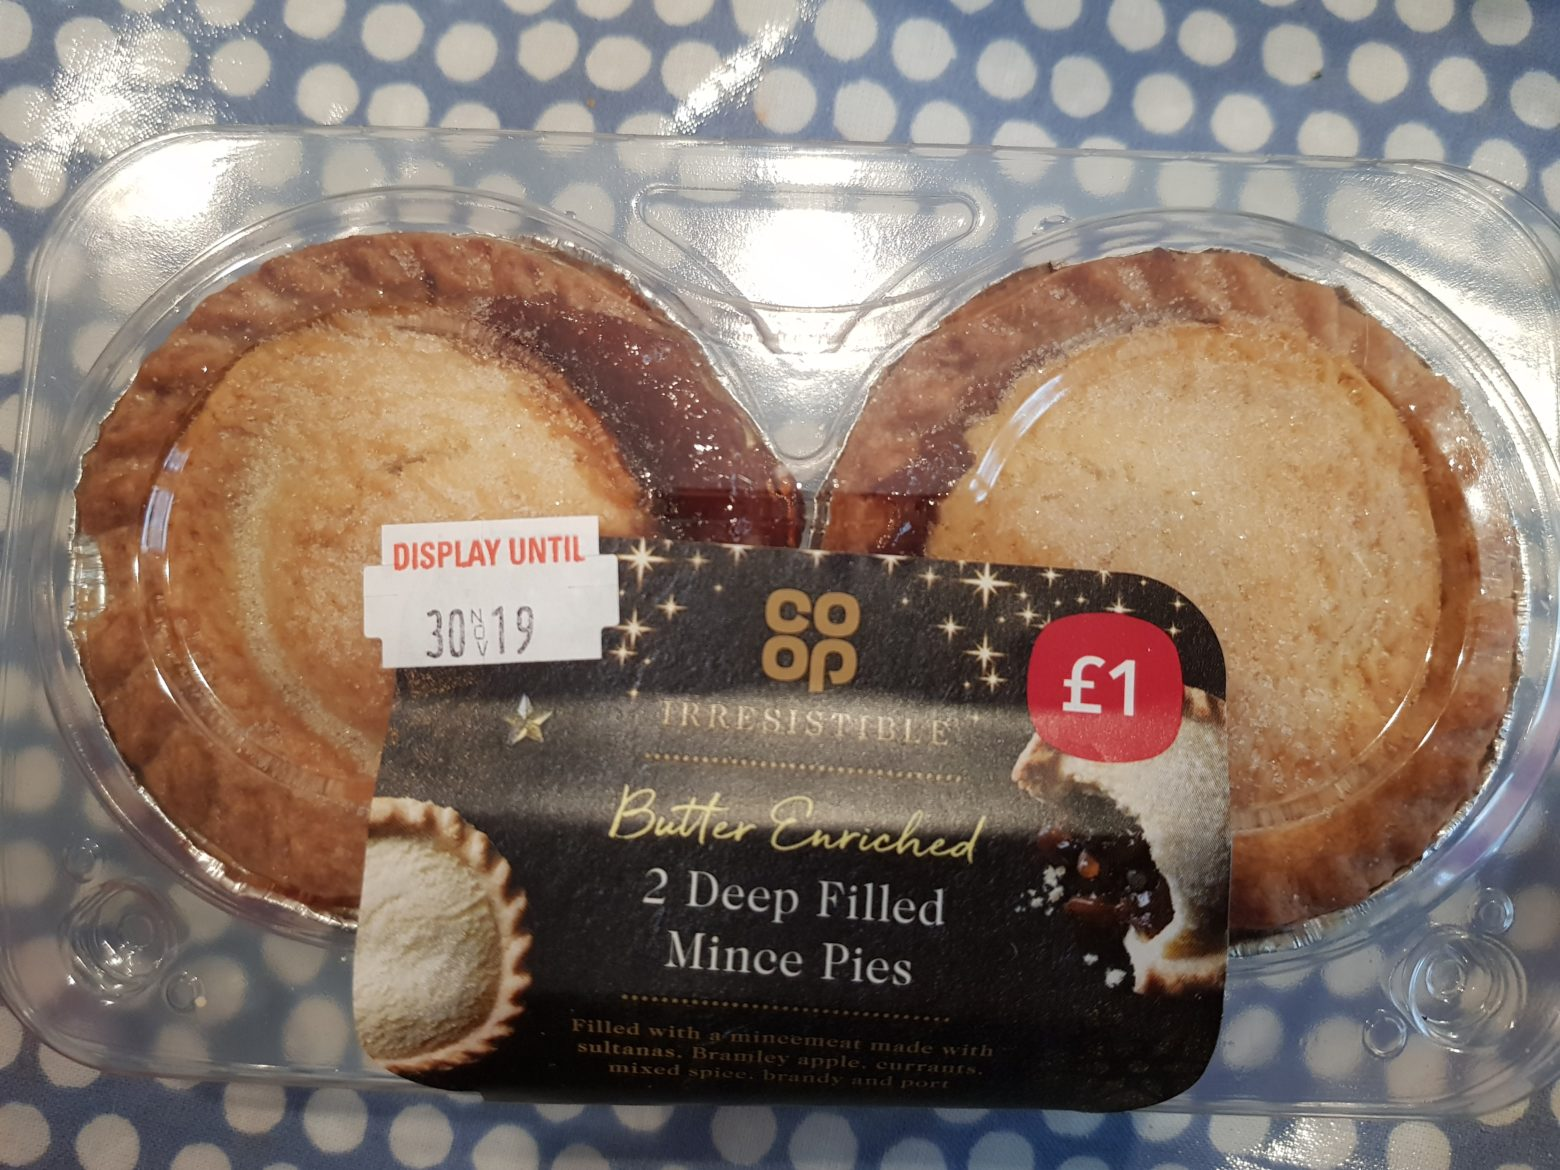 Co-op Irresistible Butter-Enriched Deep Filled Mince Pie Review 2019